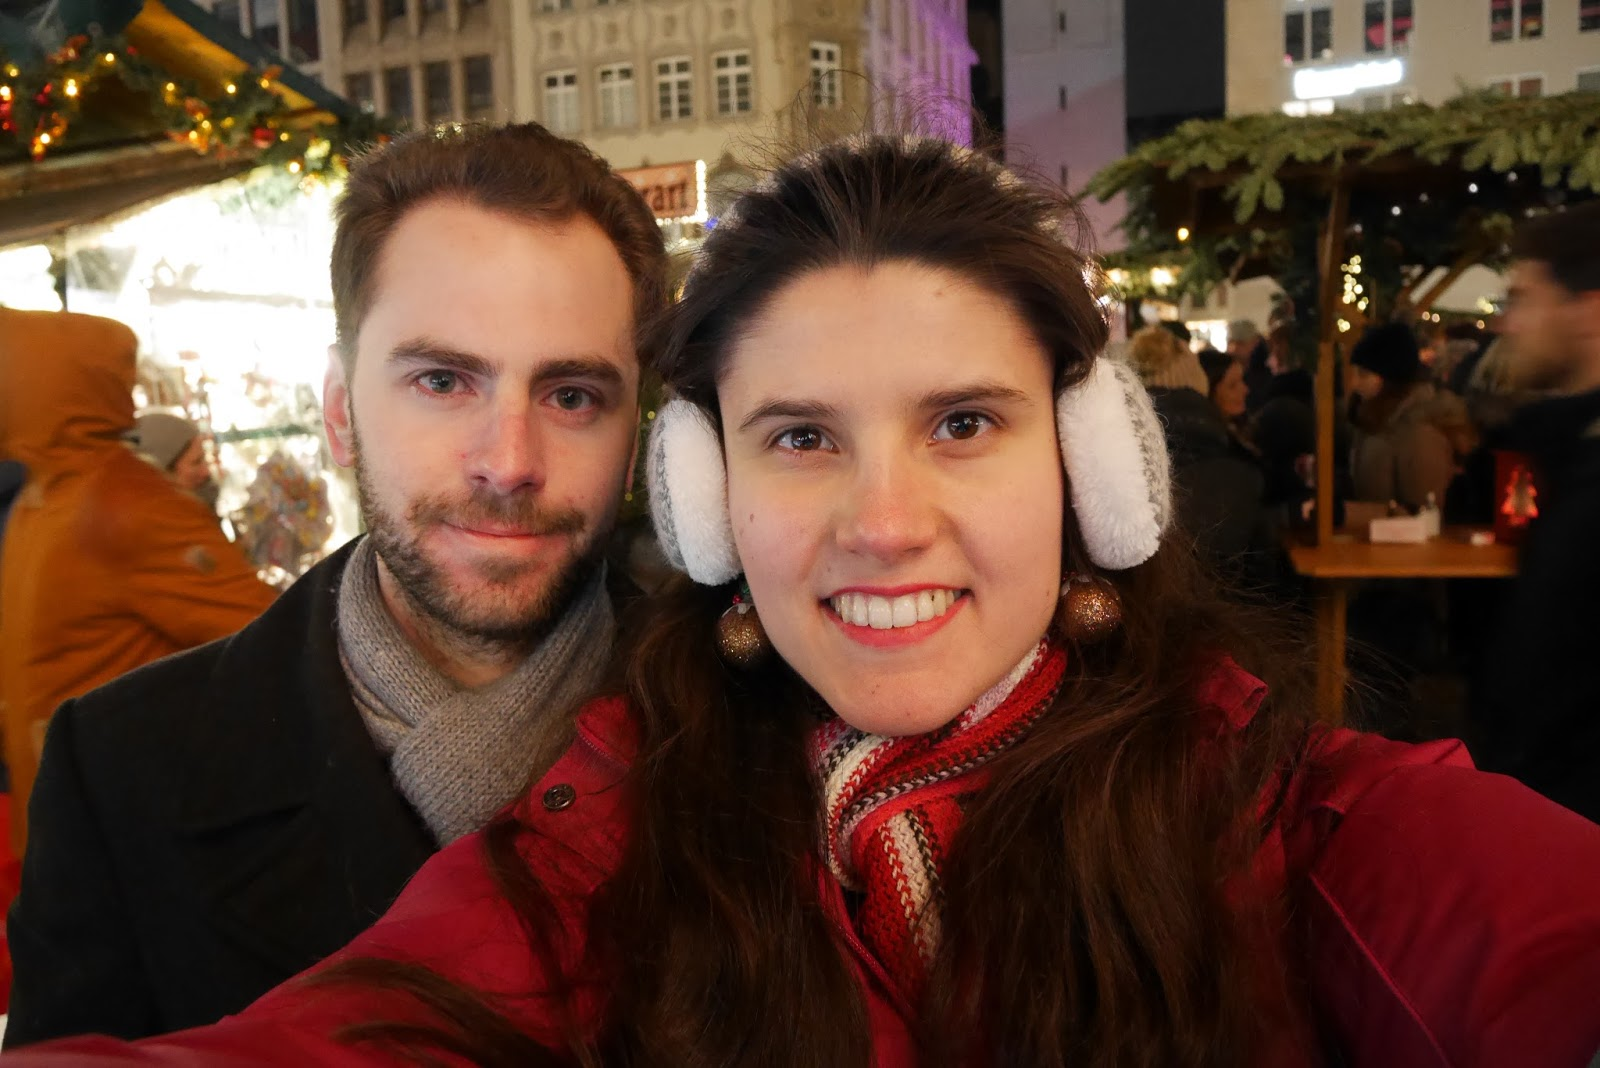 Exploring the Munich Christmas Markets